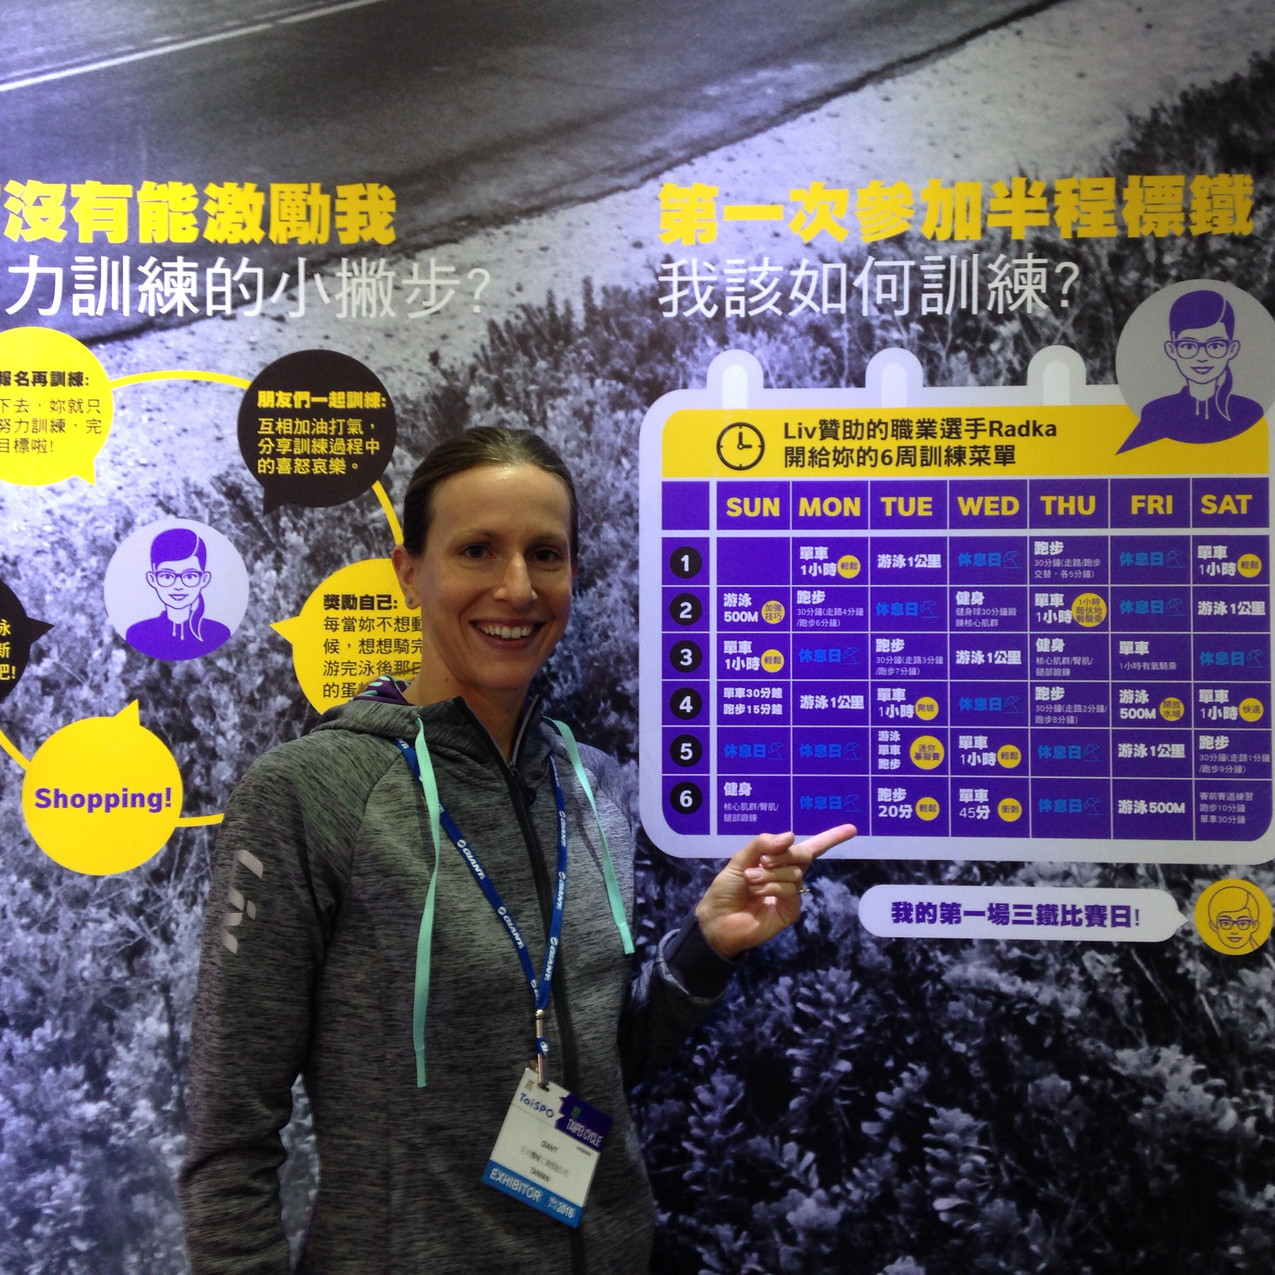 My training plan for beginners at the International cycle show. (LIV and Giant Expo booth)